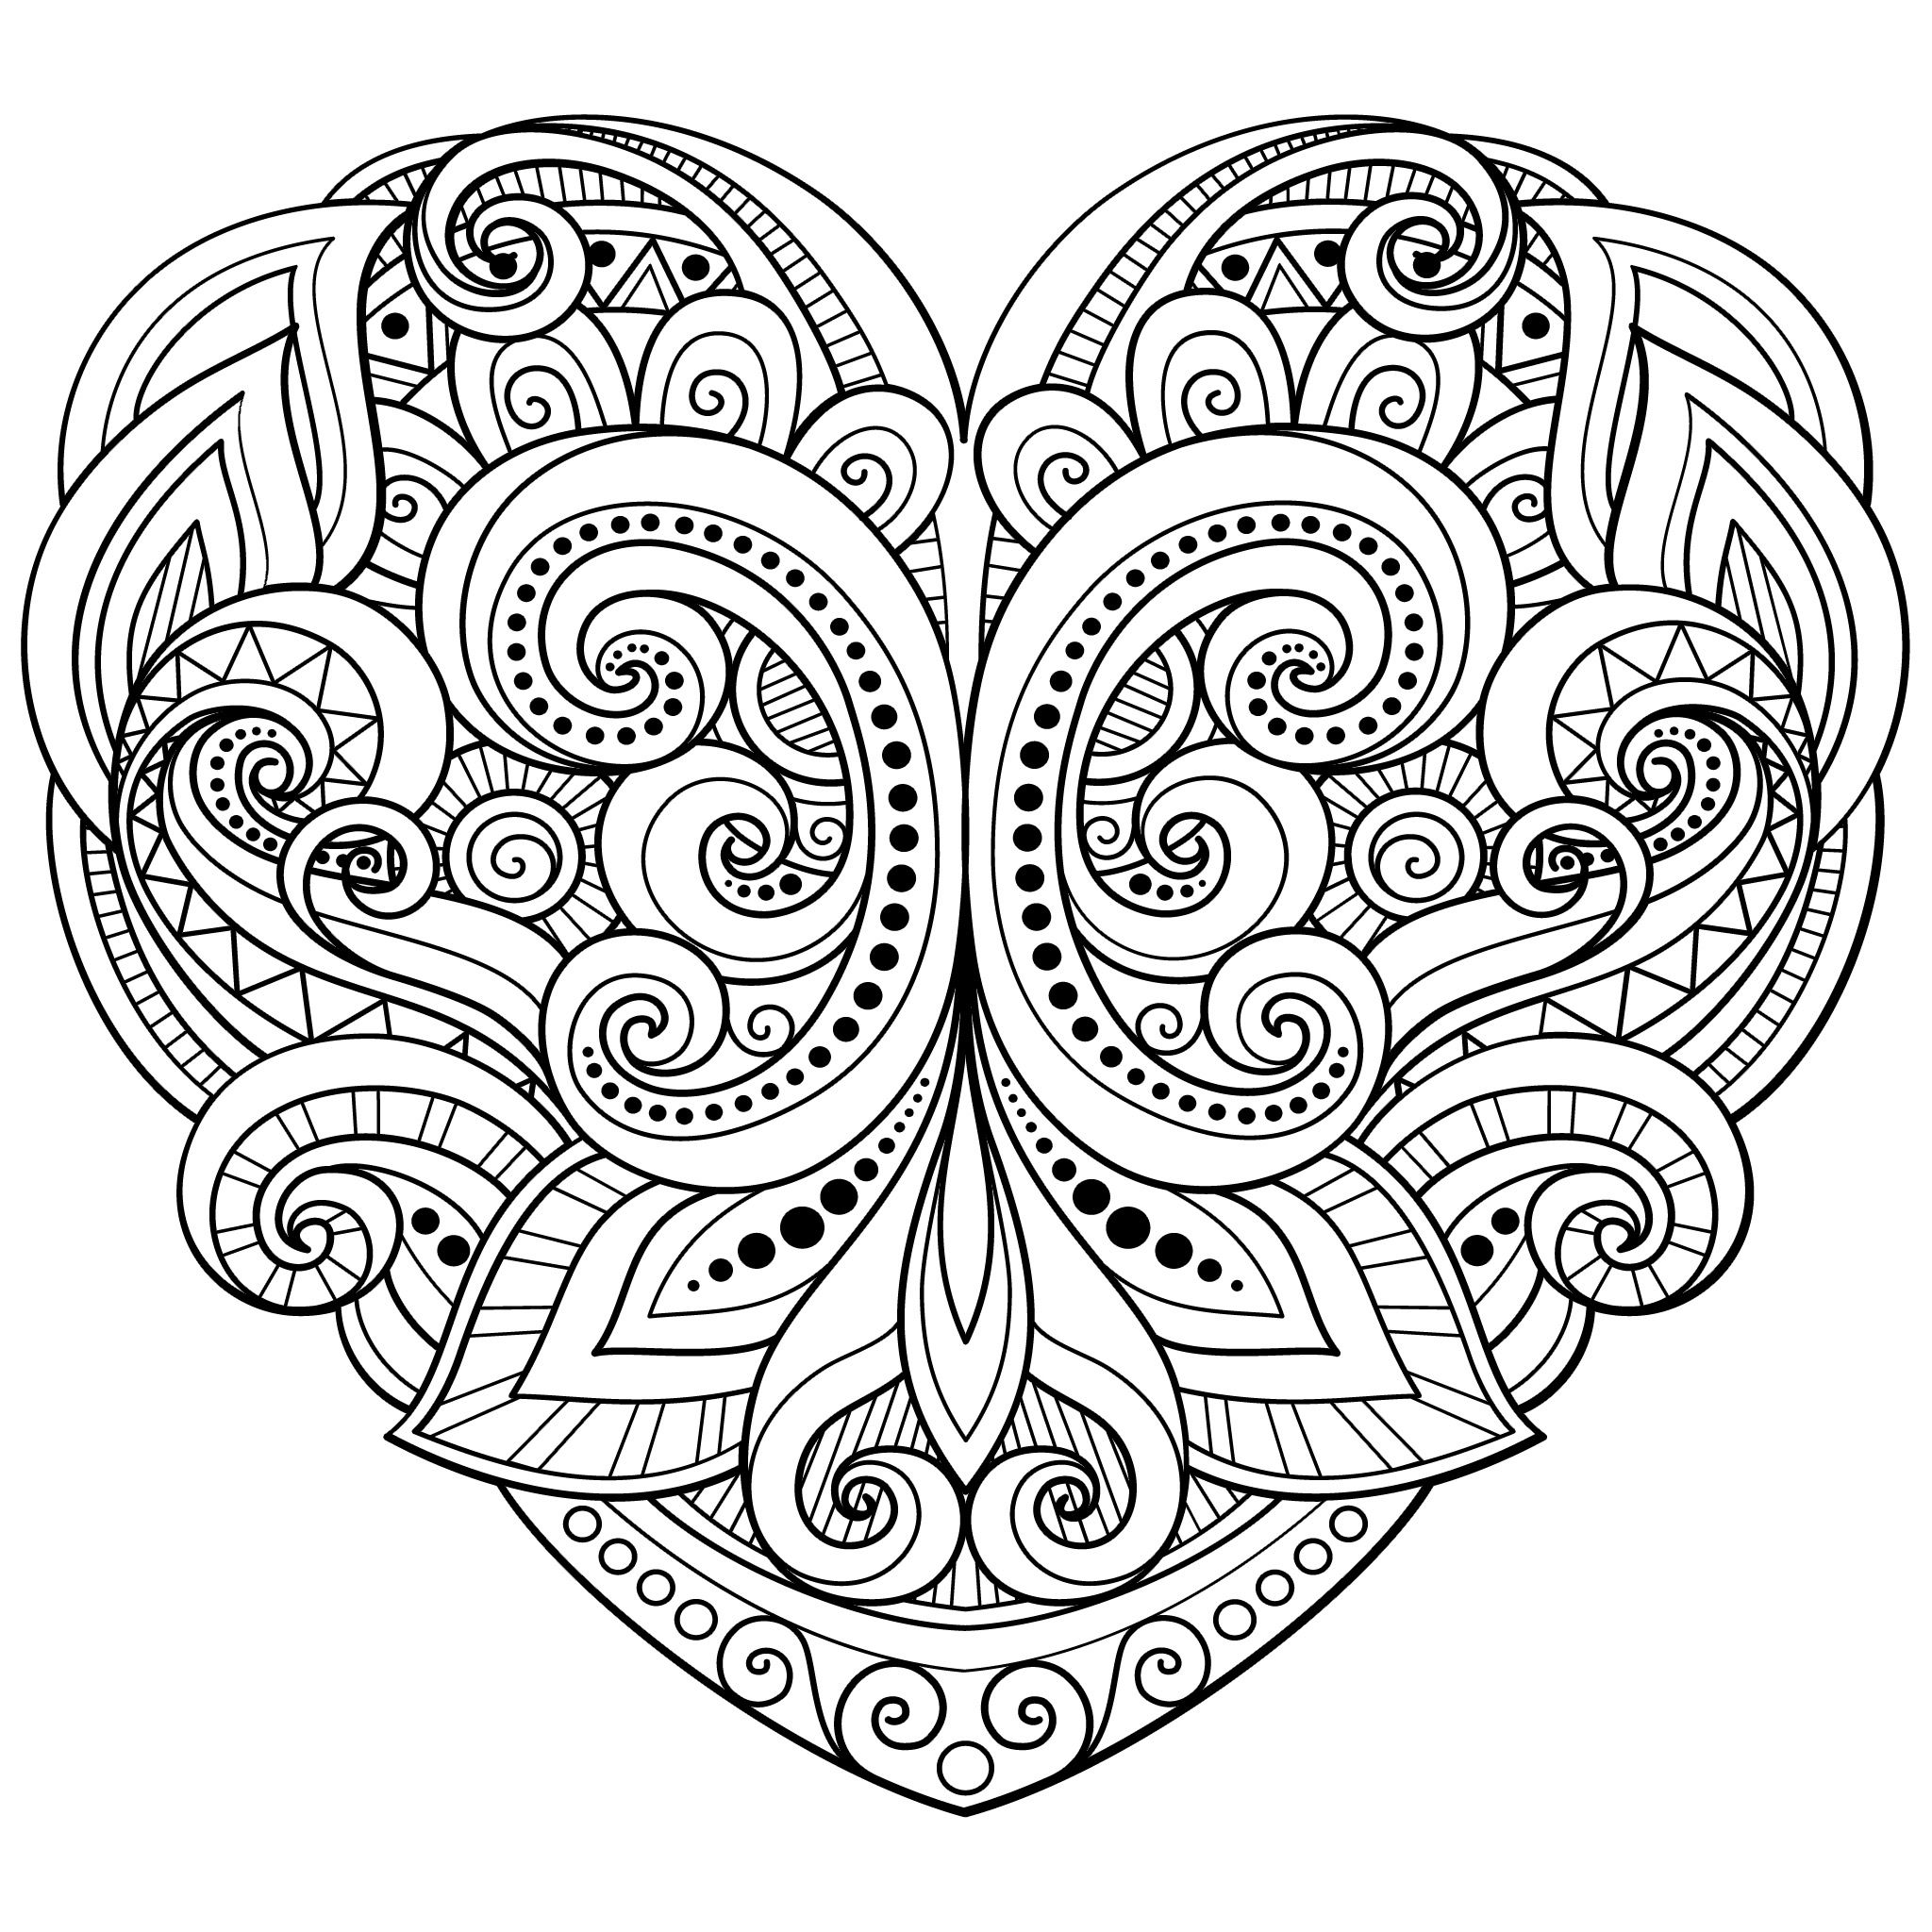 25 Best Adults Coloring Hearts Images On Neo Coloring Pages